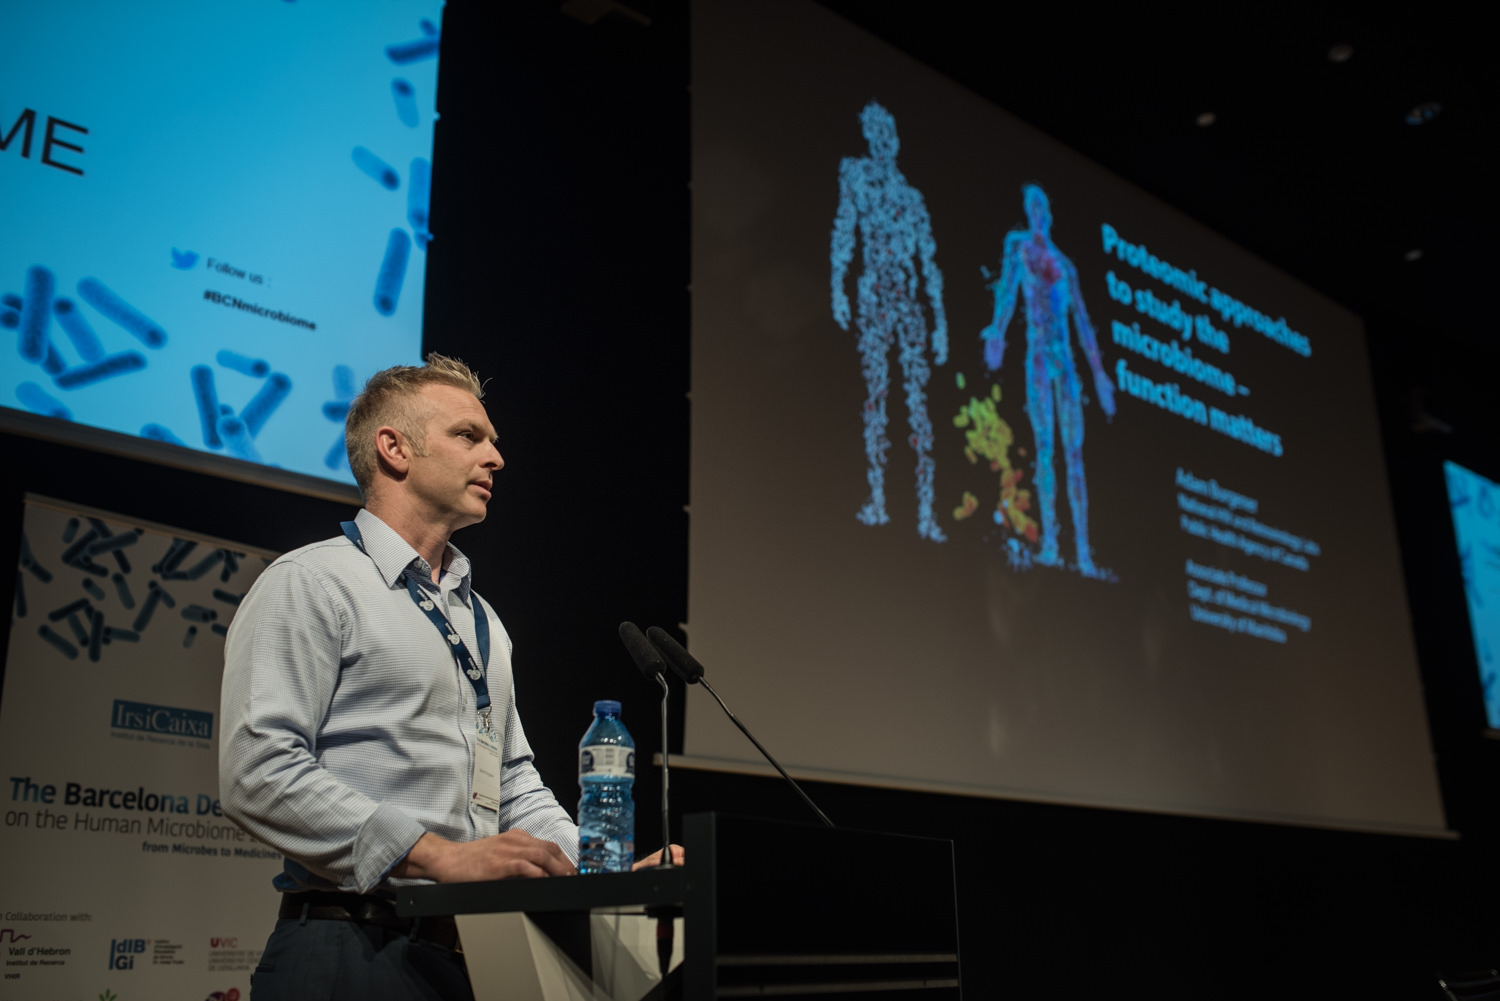 Adam Burgener at The Barcelona Debates on the Human Microbiome